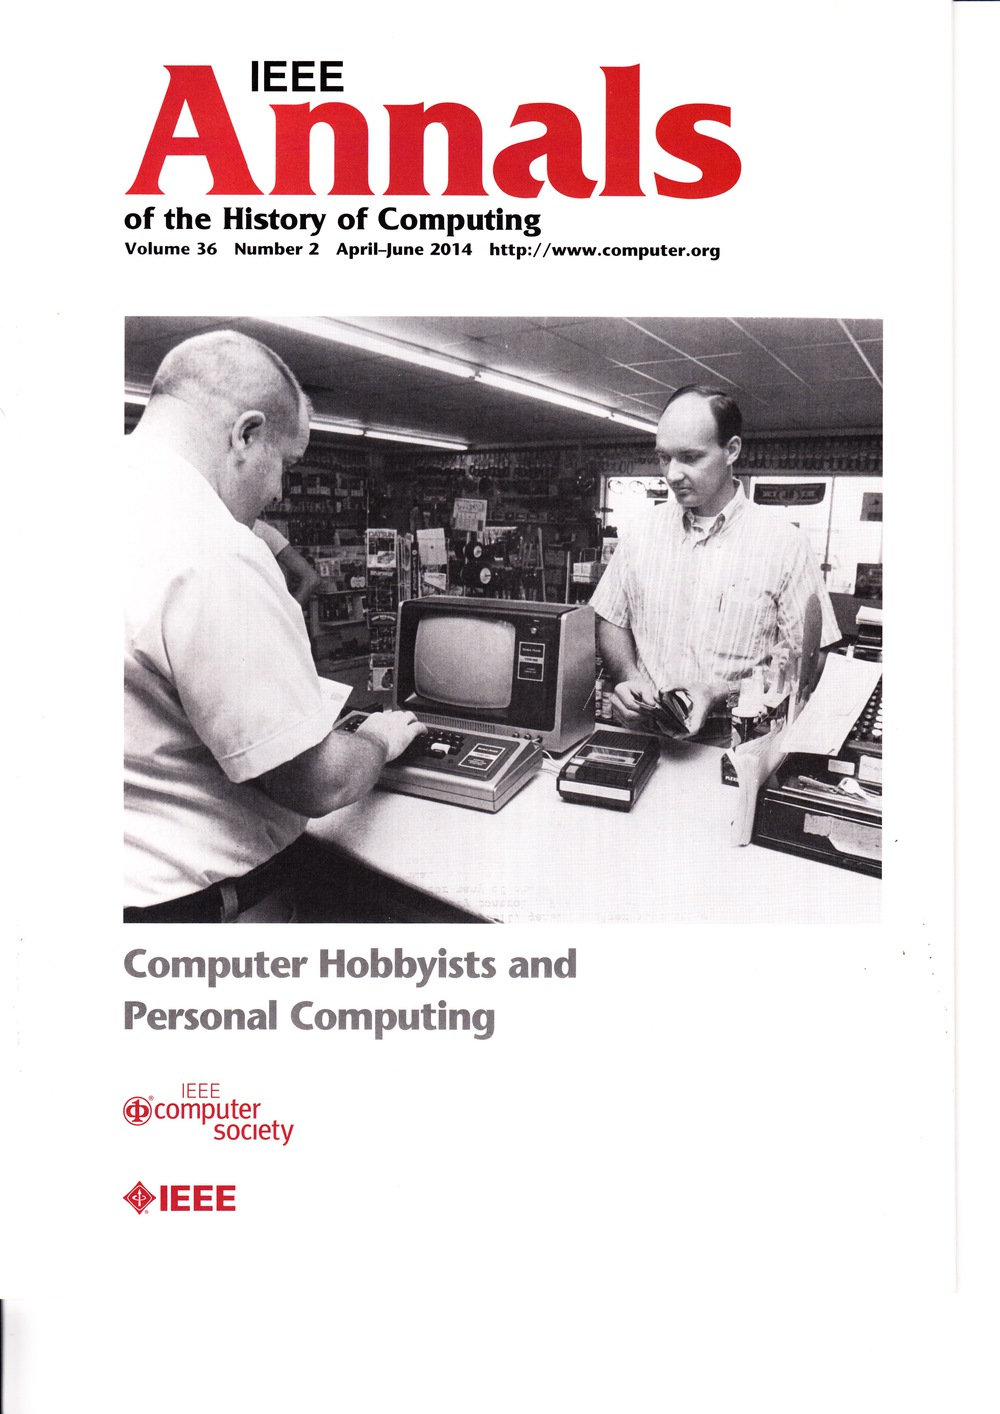 Scan of Document: IEEE Annals of the History of Computing - April-June 2014